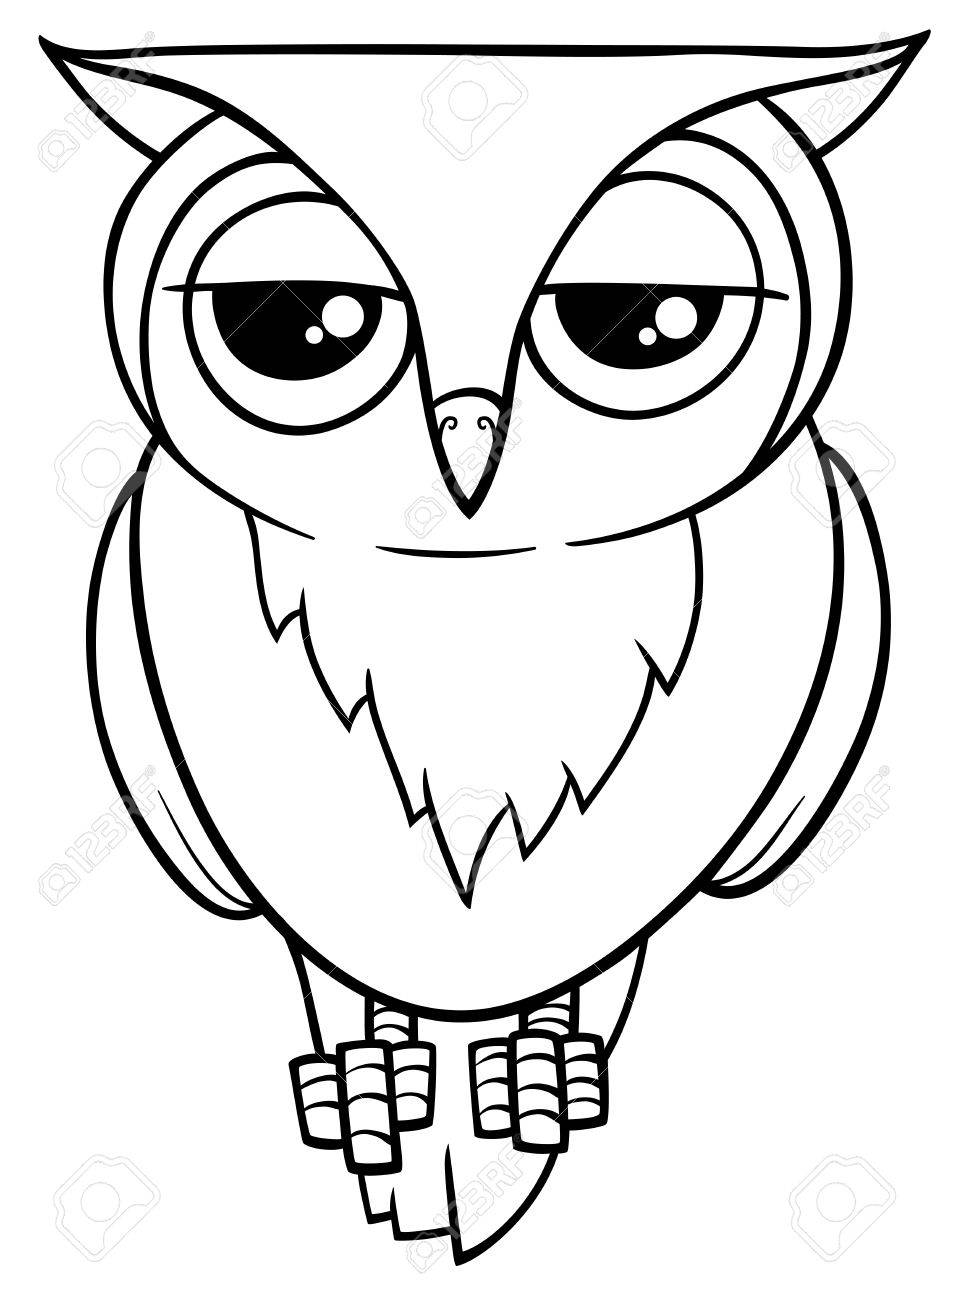 Black and white cartoon illustration of funny owl bird animal